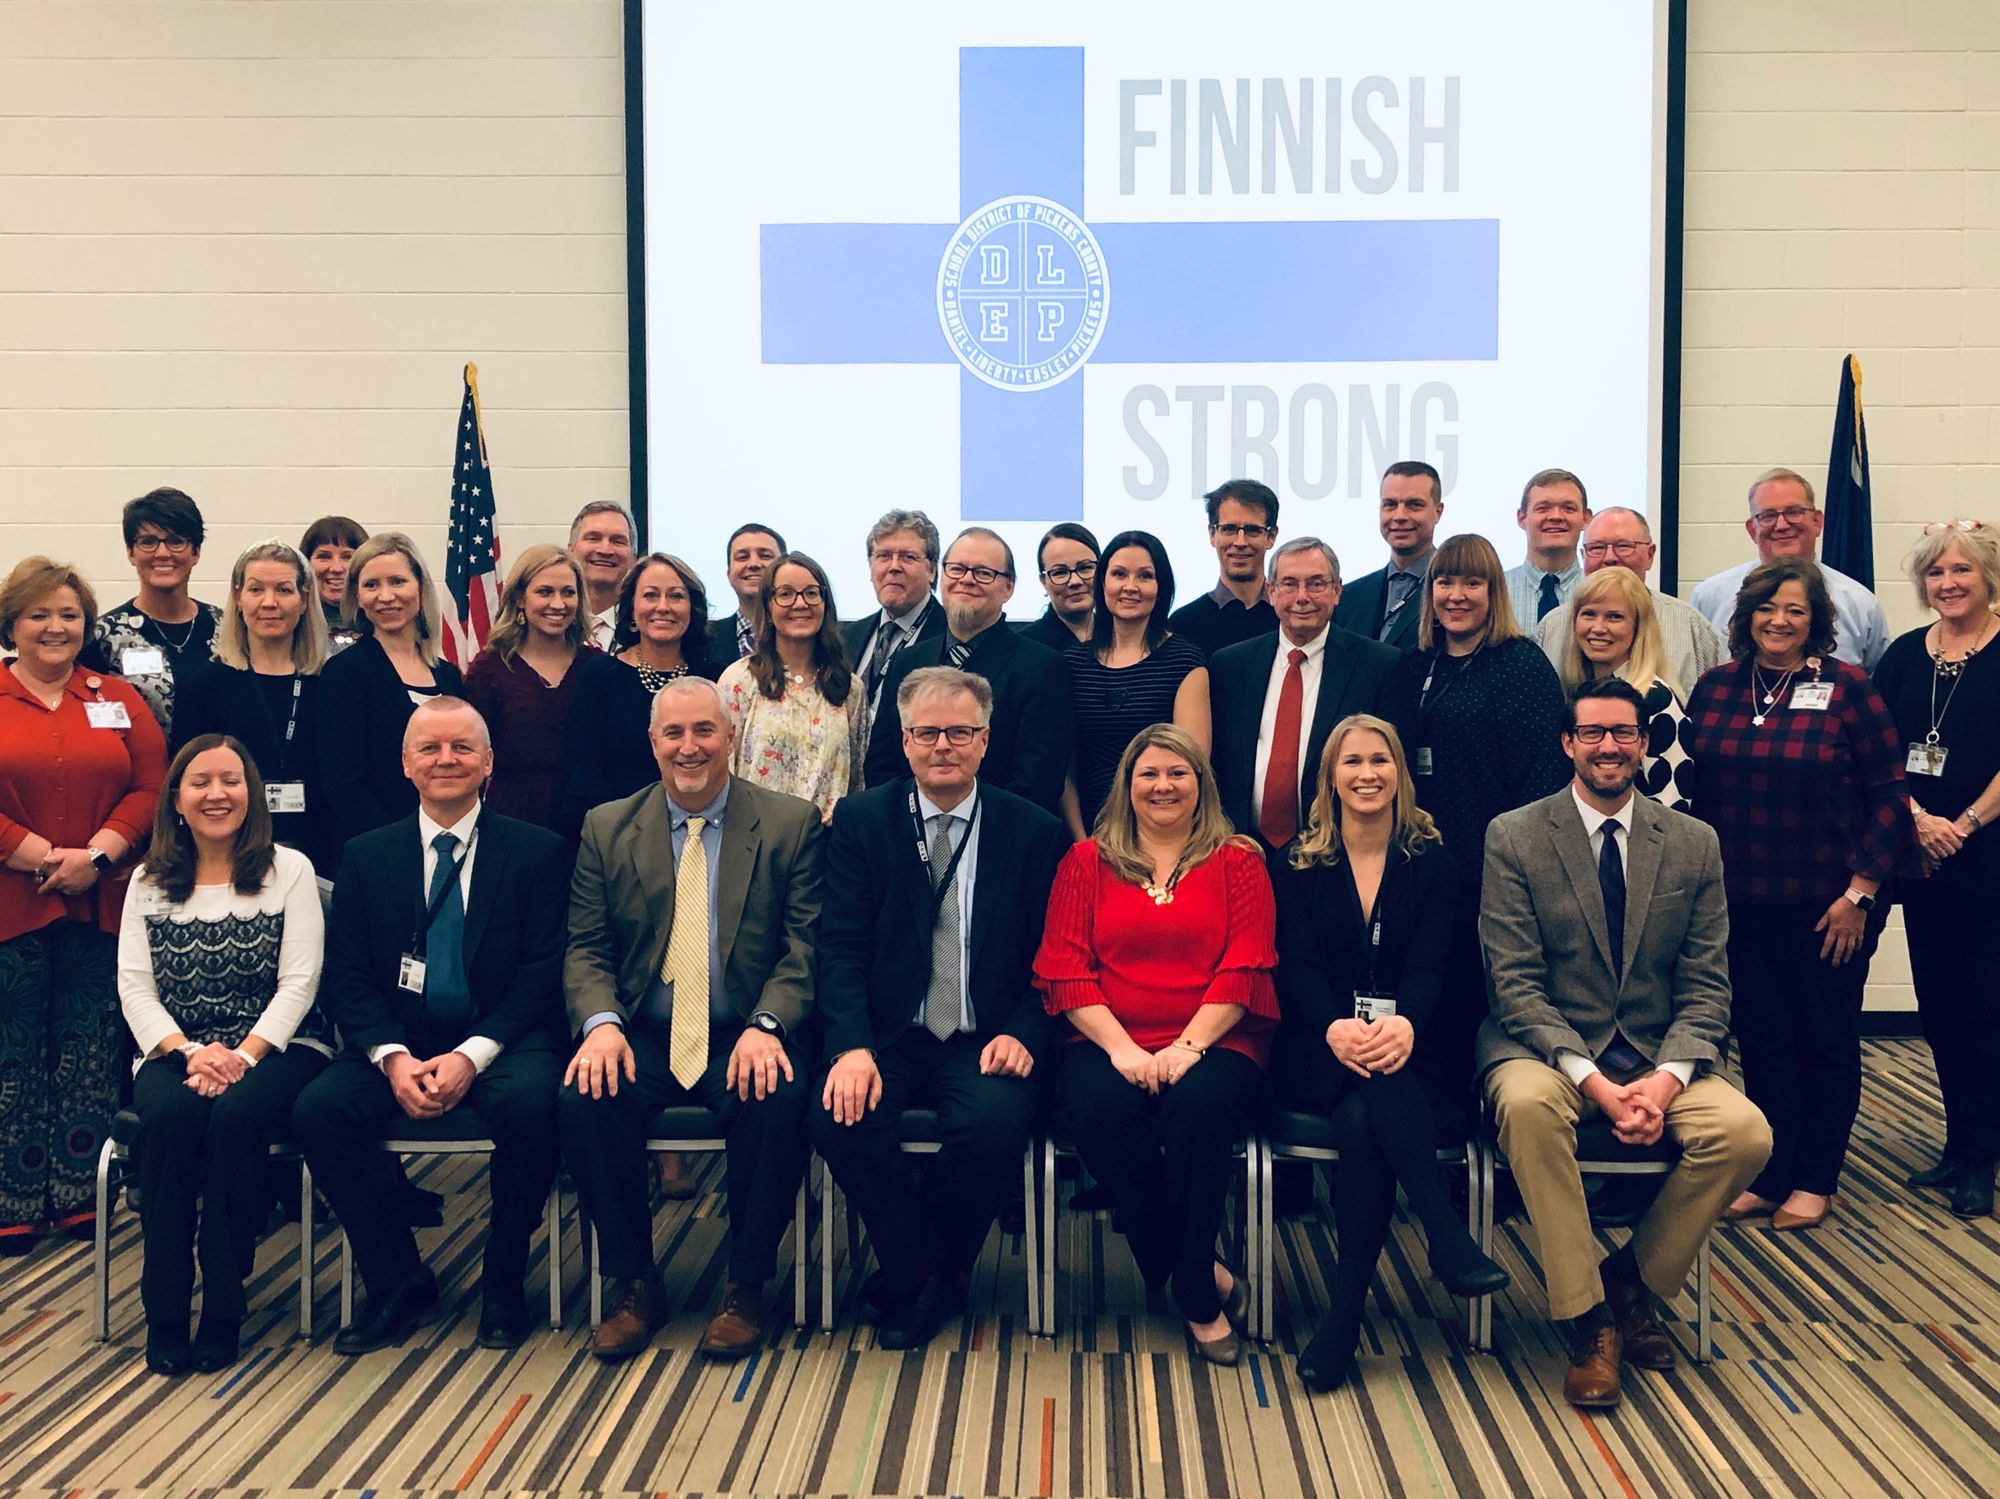 Group Photo of SDPC and Finnish educators